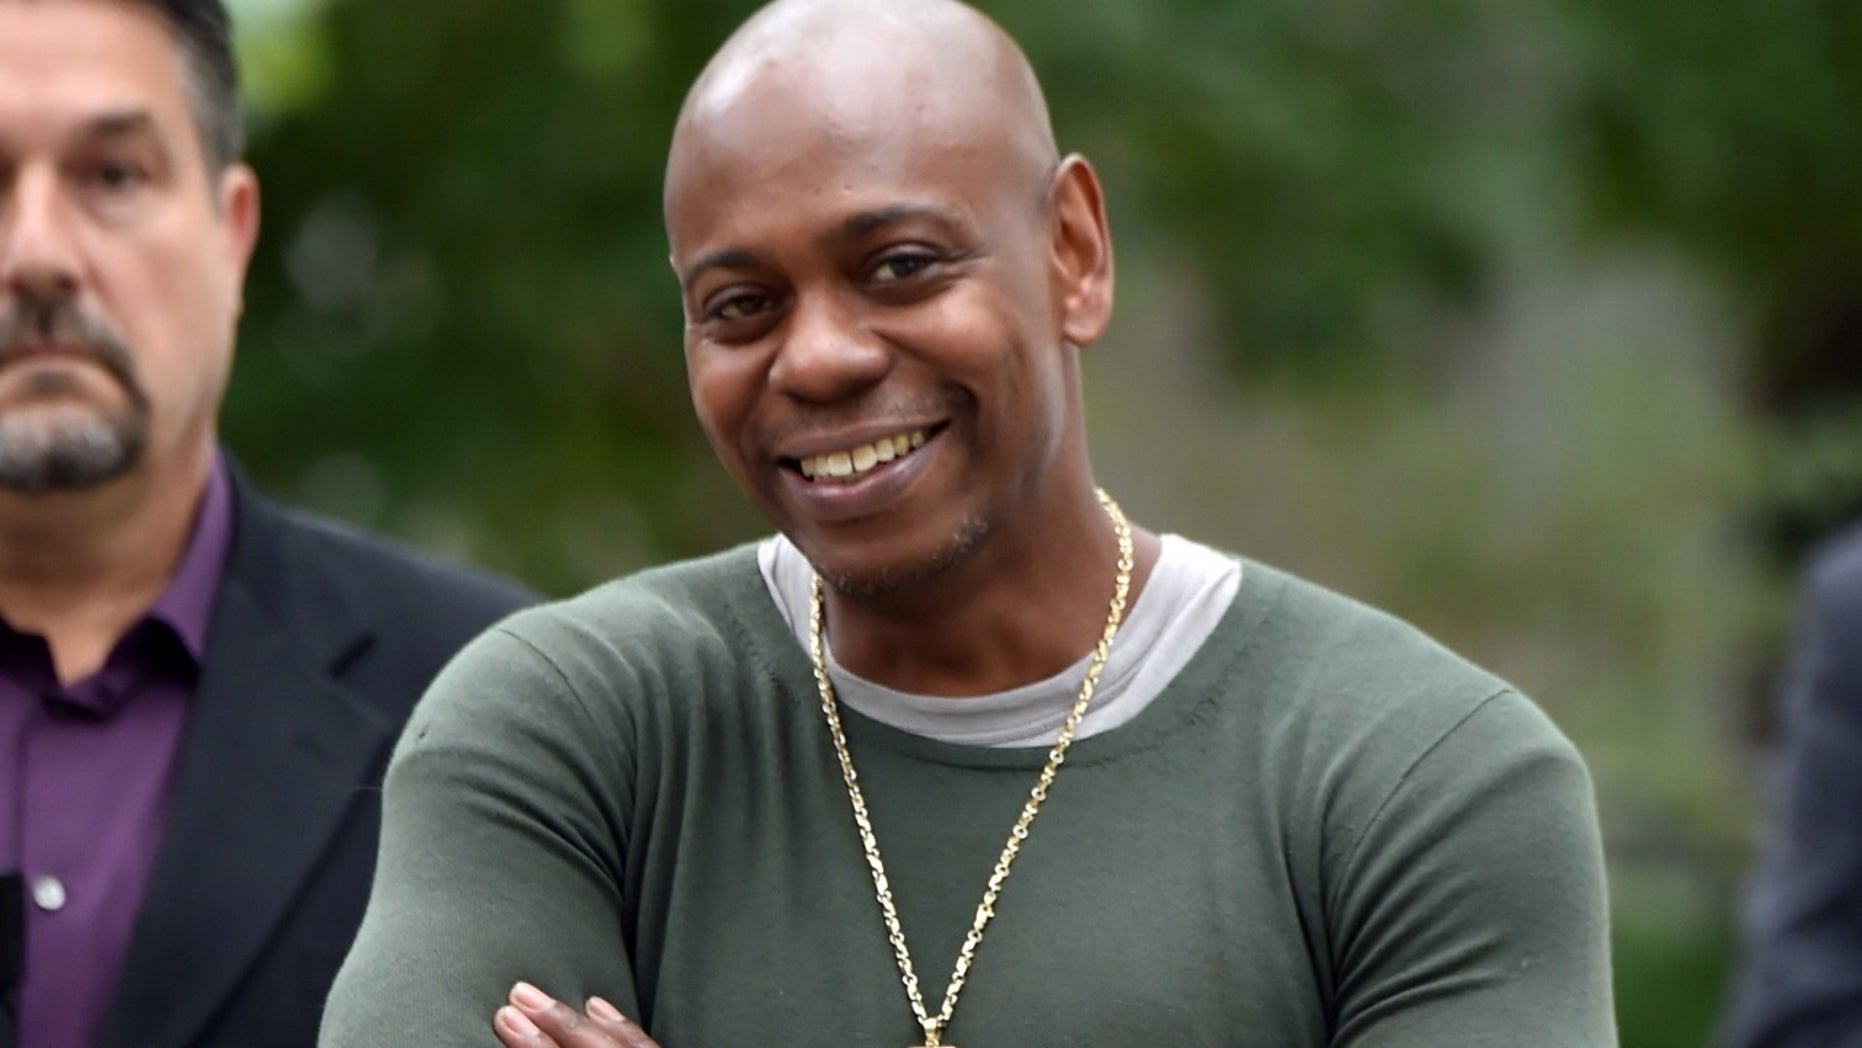 Comedian Dave Chappelle delivered tickets to a couple who were scammed out of hundreds of dollars trying to purchase tickets to his show in Charlotte.